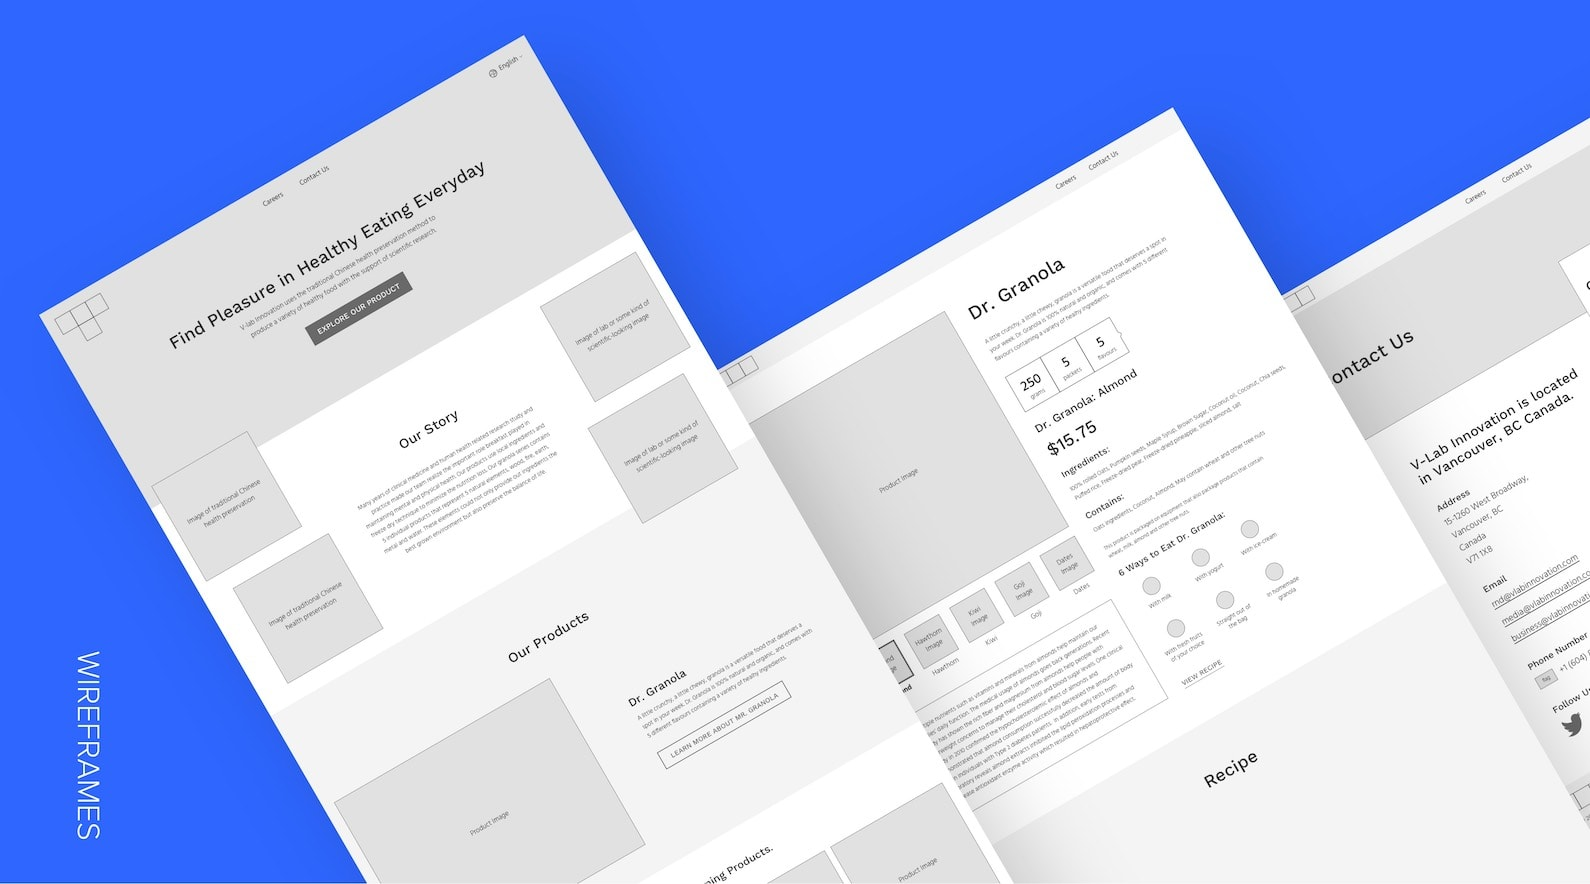 v-lab wireframes